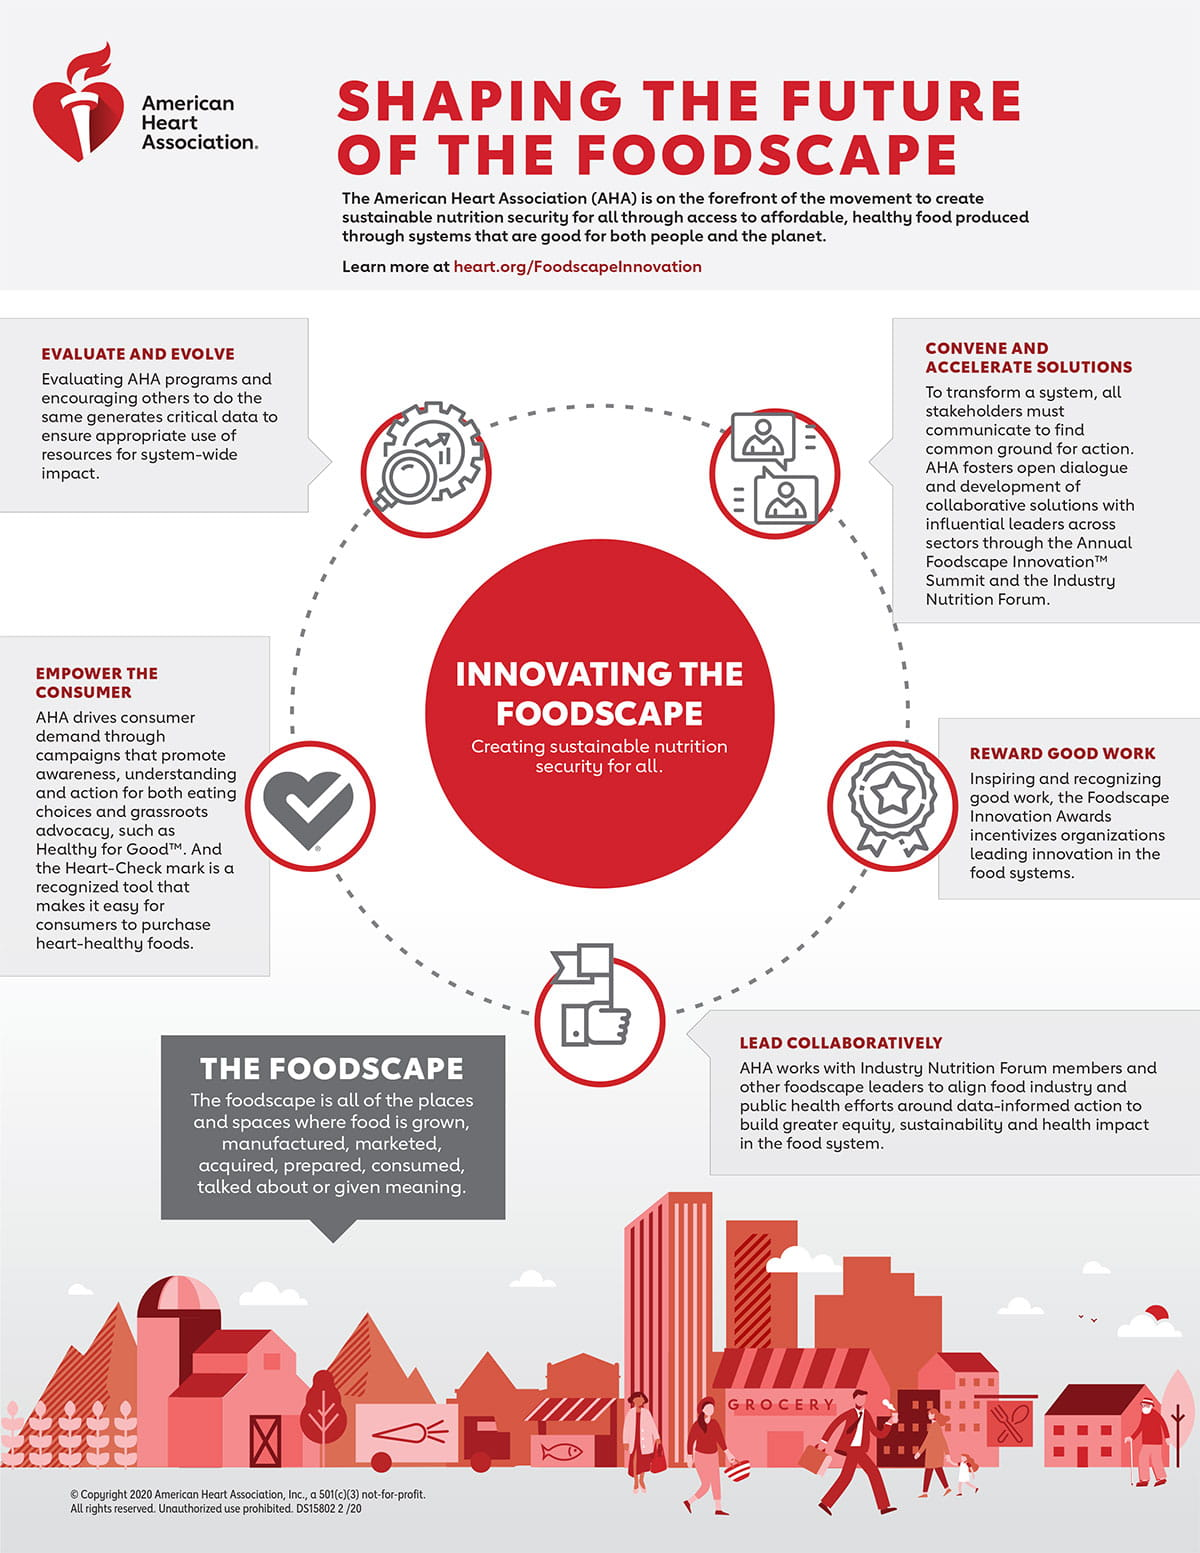 Shaping the Future of the Foodscape Infographic